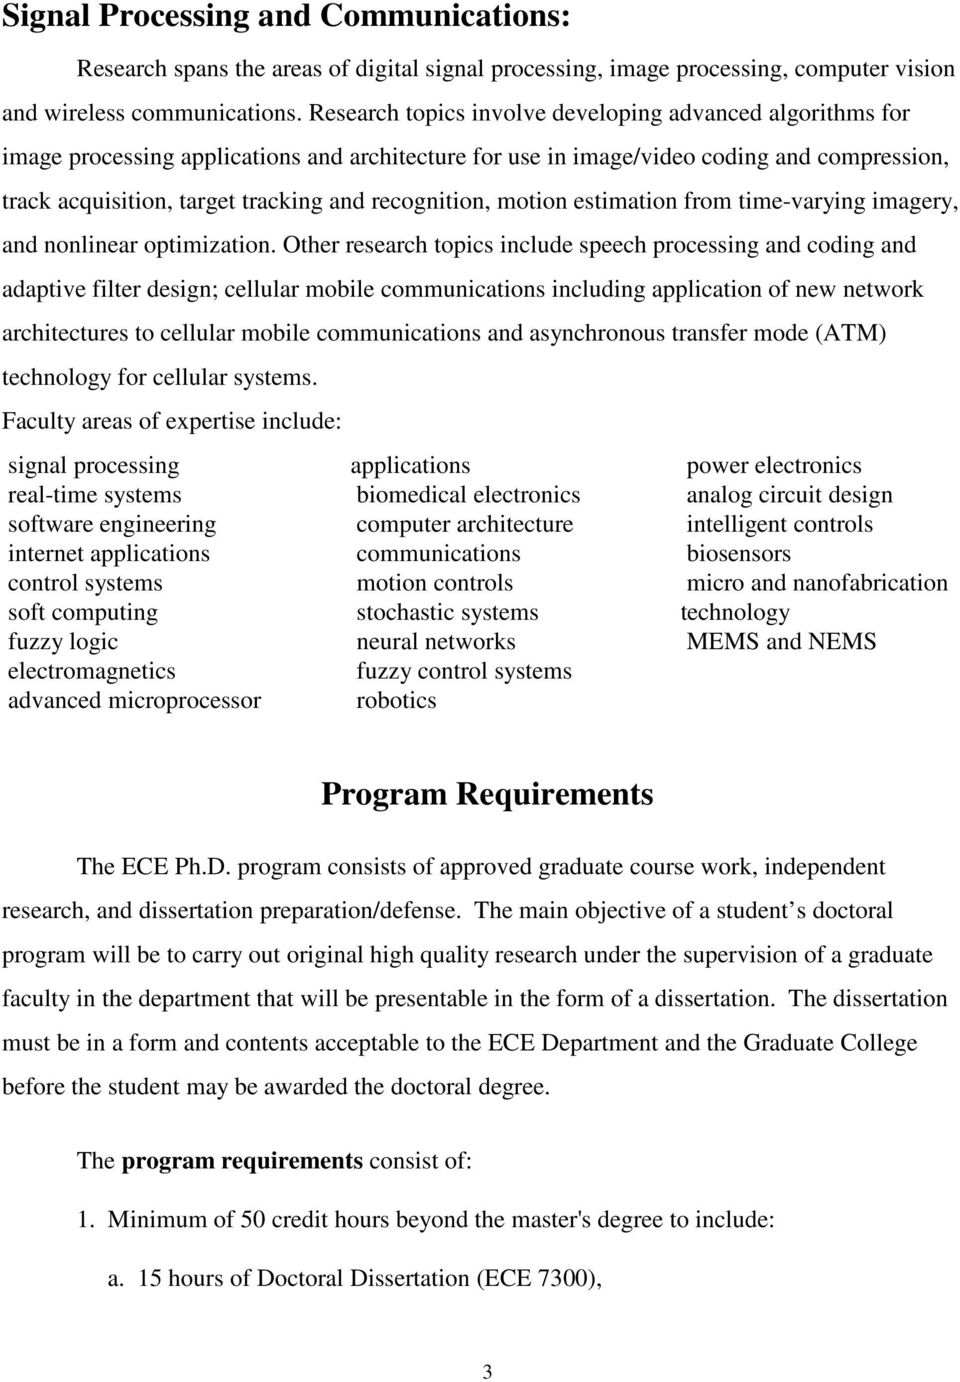 Electrical and Computer Engineering (ECE) - PDF